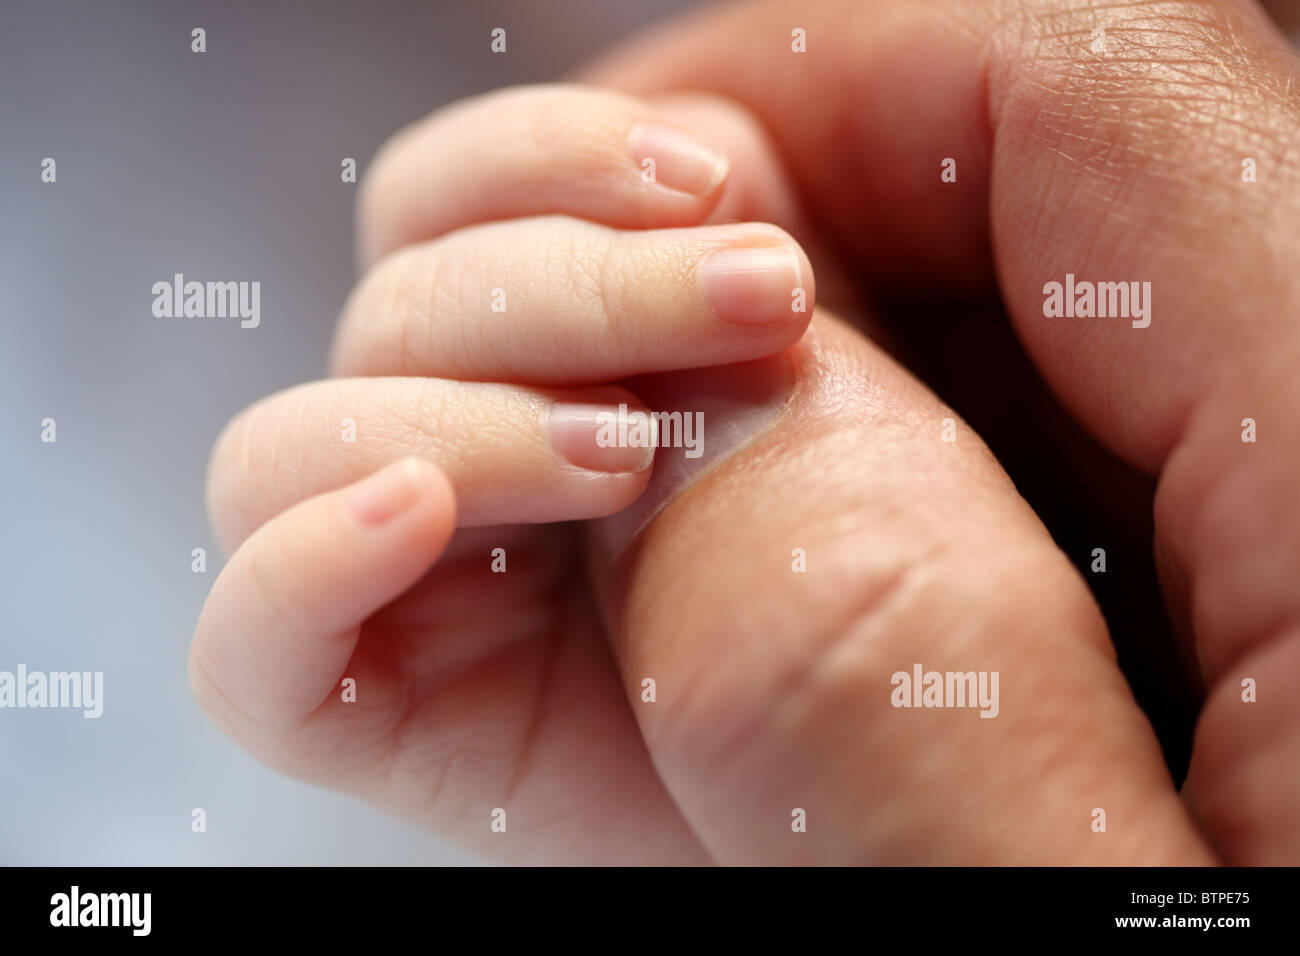 Newborn baby holding hands with his fatherStock Photo